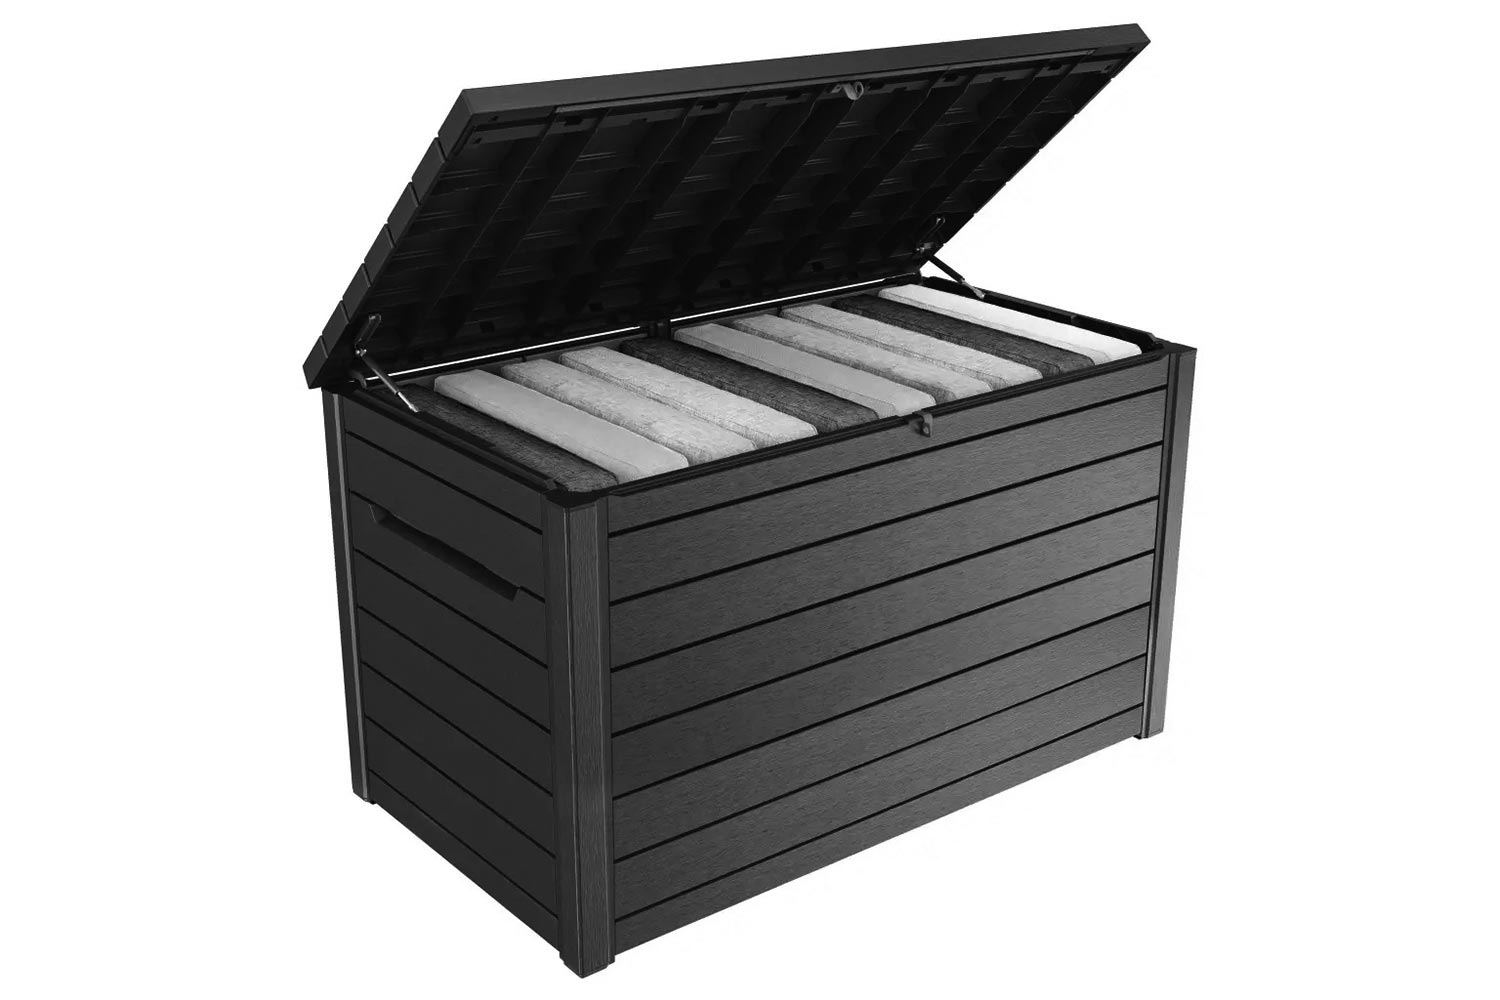 Keter Lounge Shed Opbergbox Aanbieding Tuinmeubelen Aanbieding Keter Ontario Kussen Opbergbox Antraciet